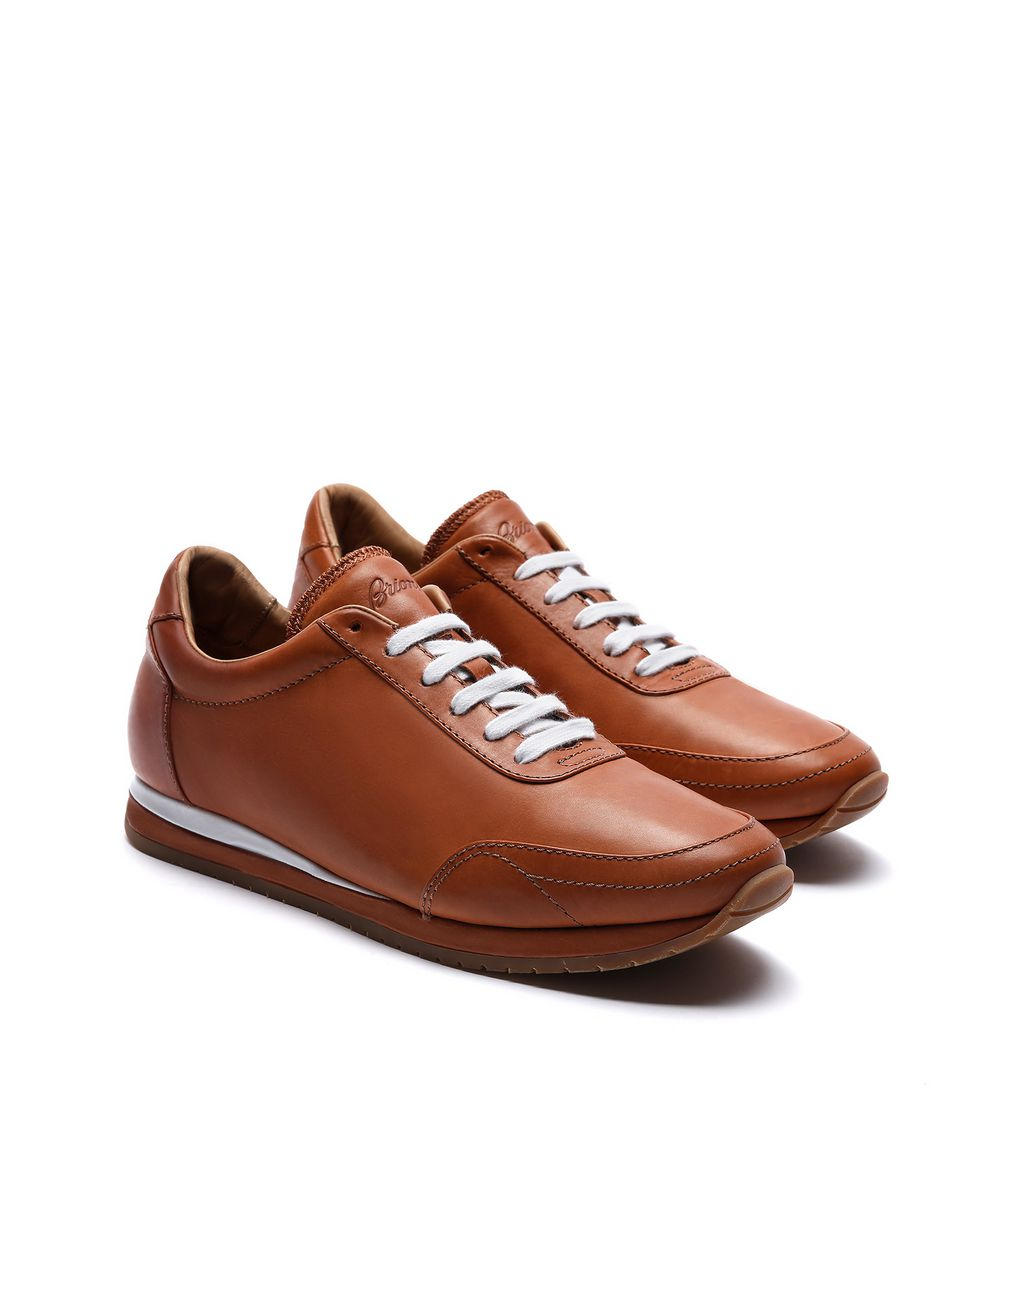 BRIONI Brown and White Runner Sneakers Sneakers Man d